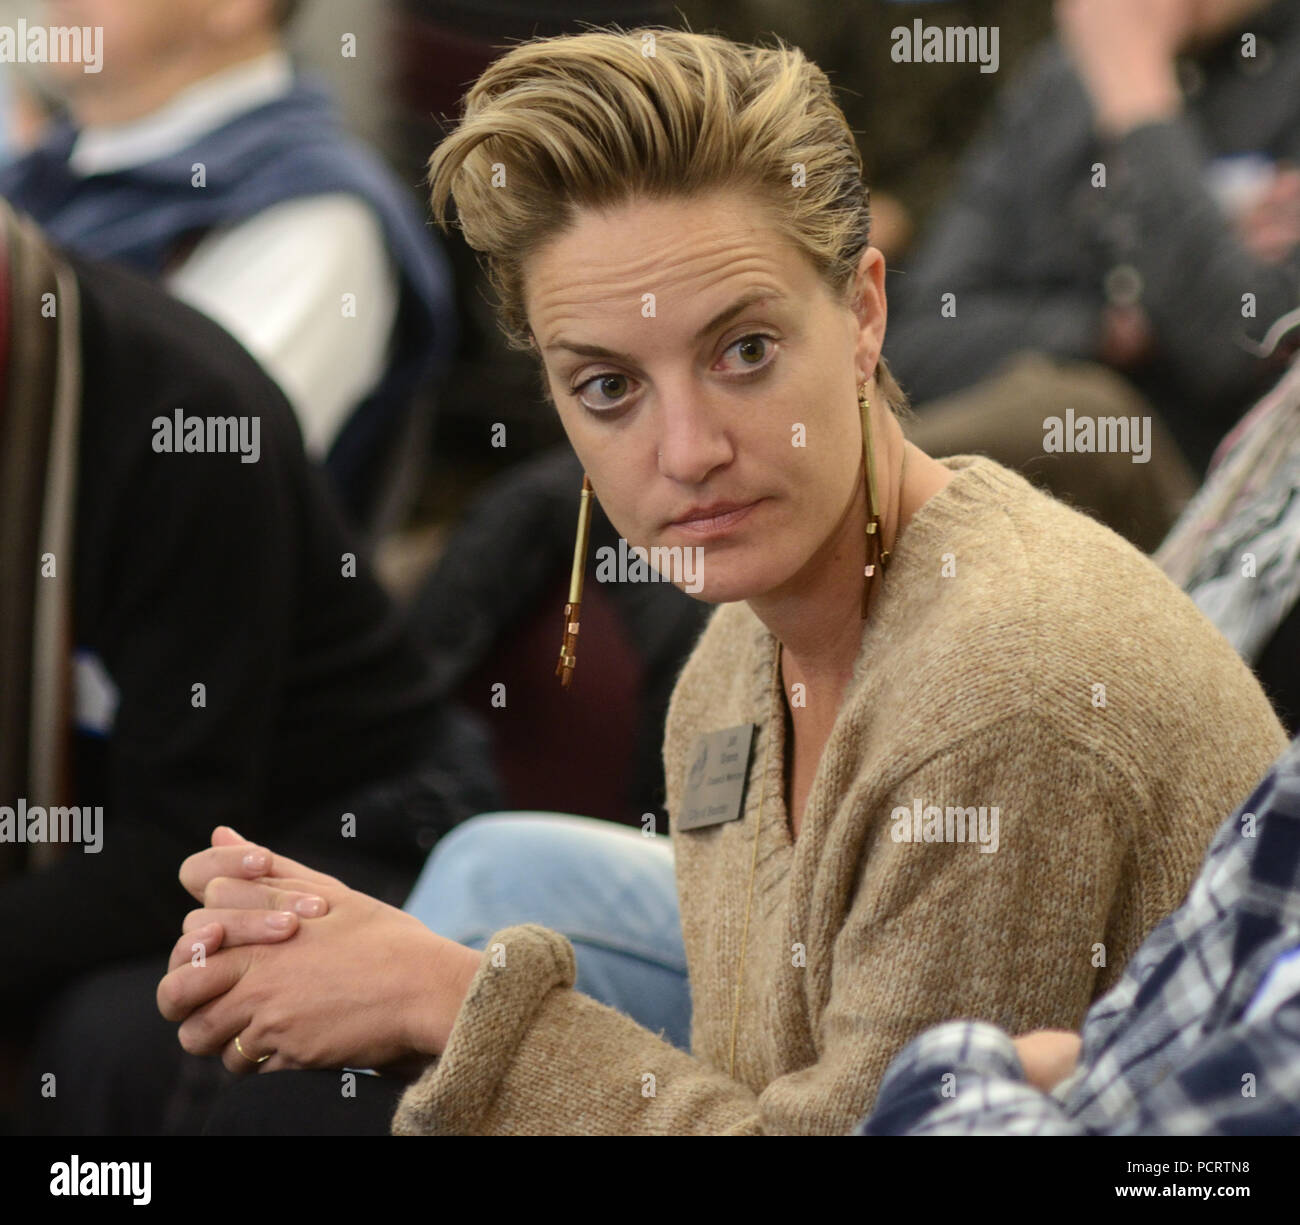 """Boulder City Council holds """"Chats with Council"""" events to obtain public input. Here, council memeber Jill Adler Grano listens. Stock Photo"""